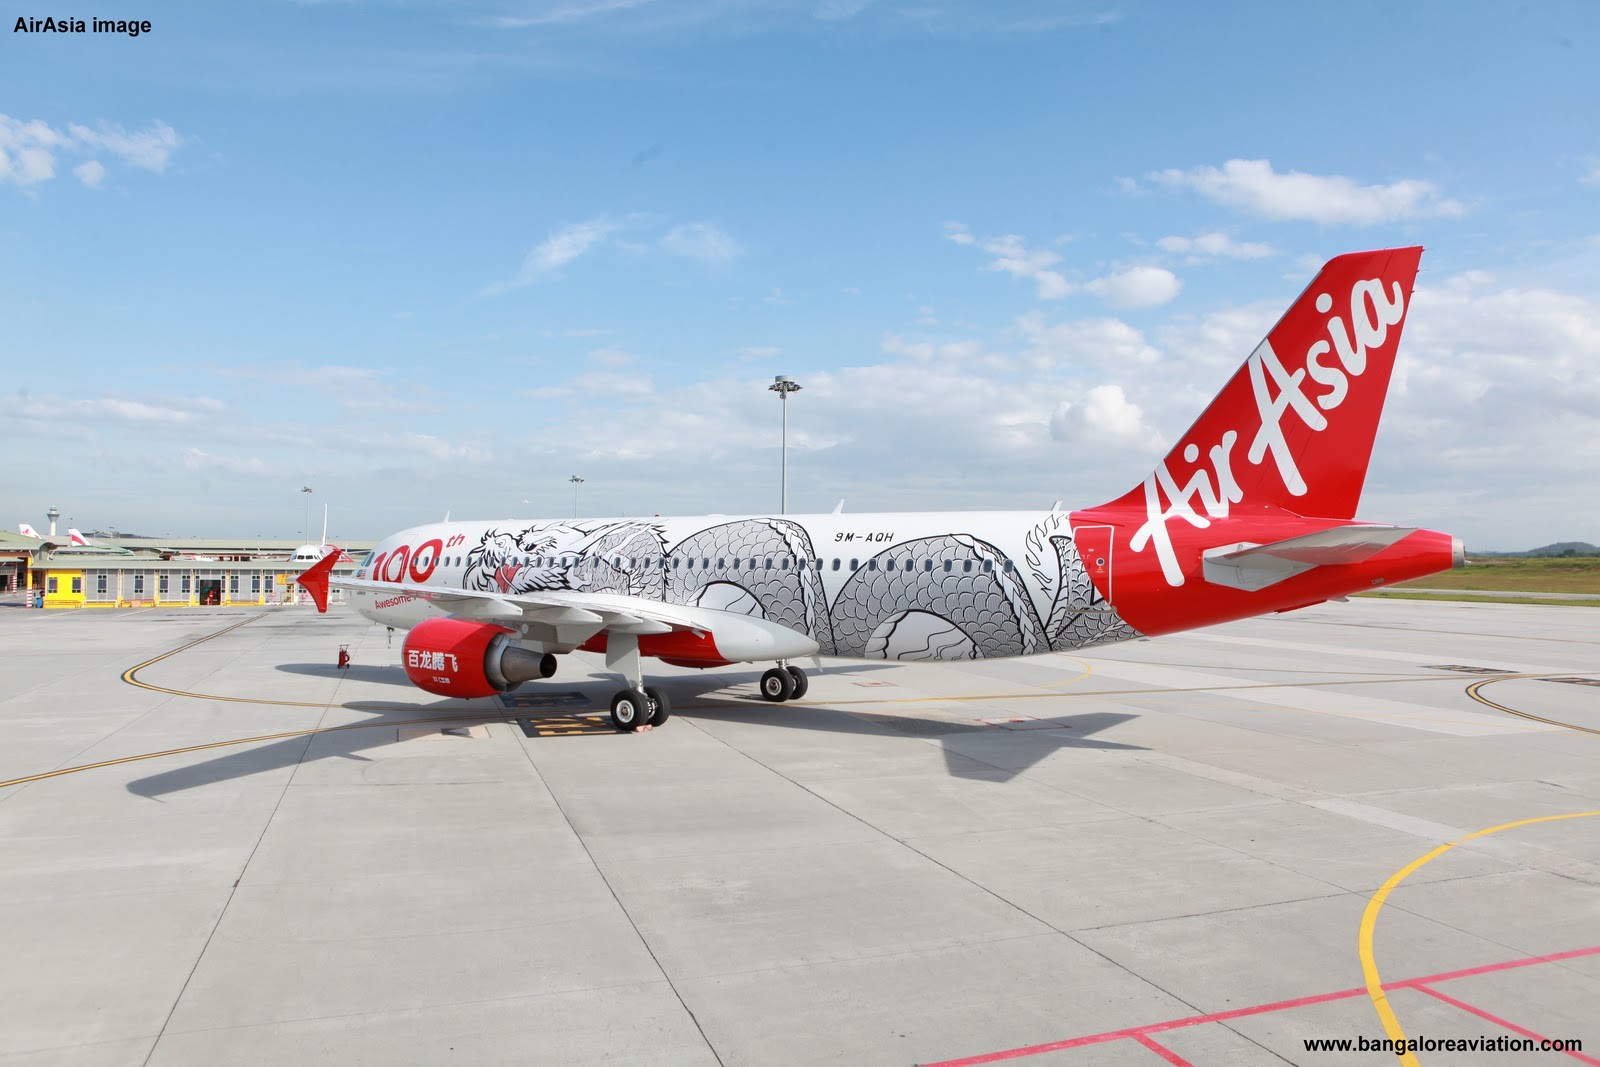 AirAsia 100th Airbus A320. Dragon Livery. 9M-AHQ